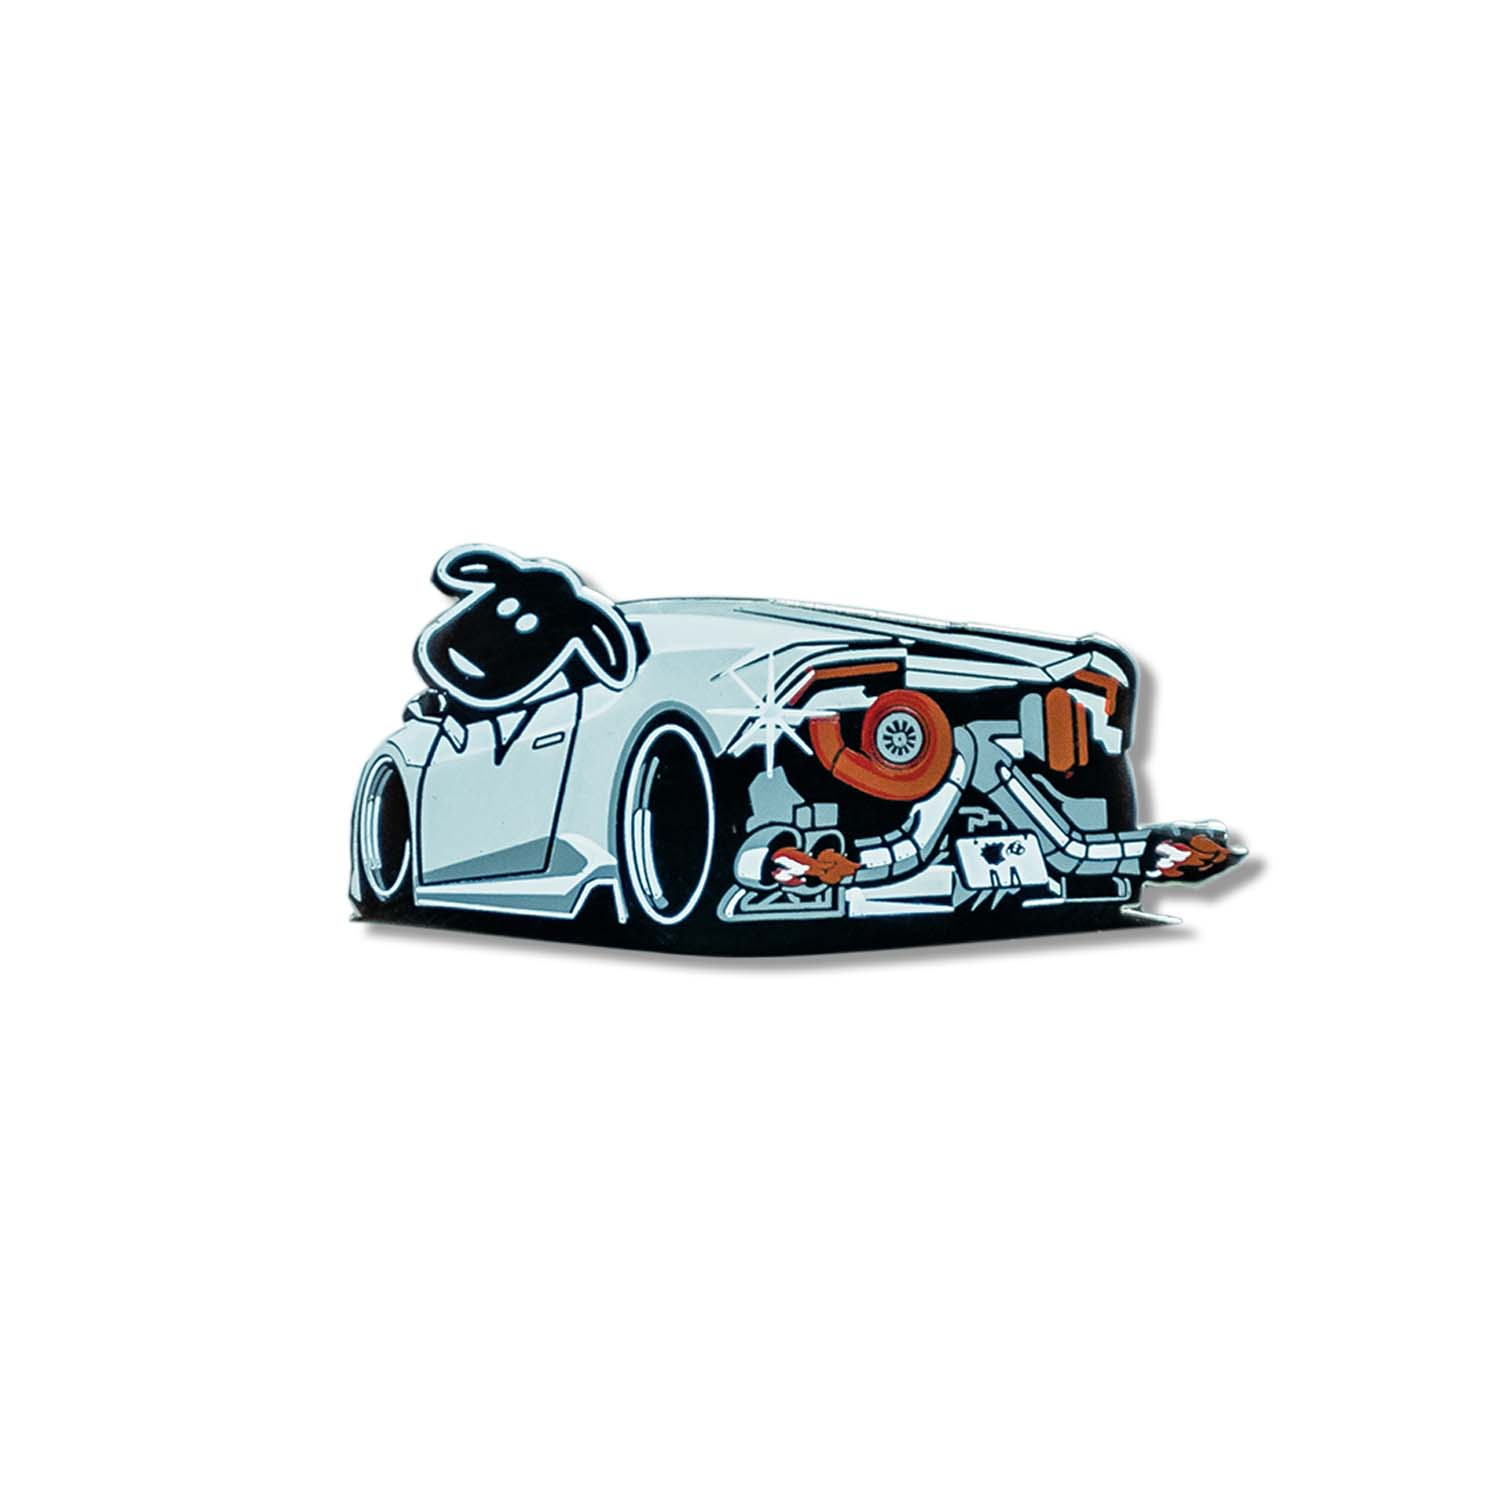 SHEEPEYRACE Huracan Pin